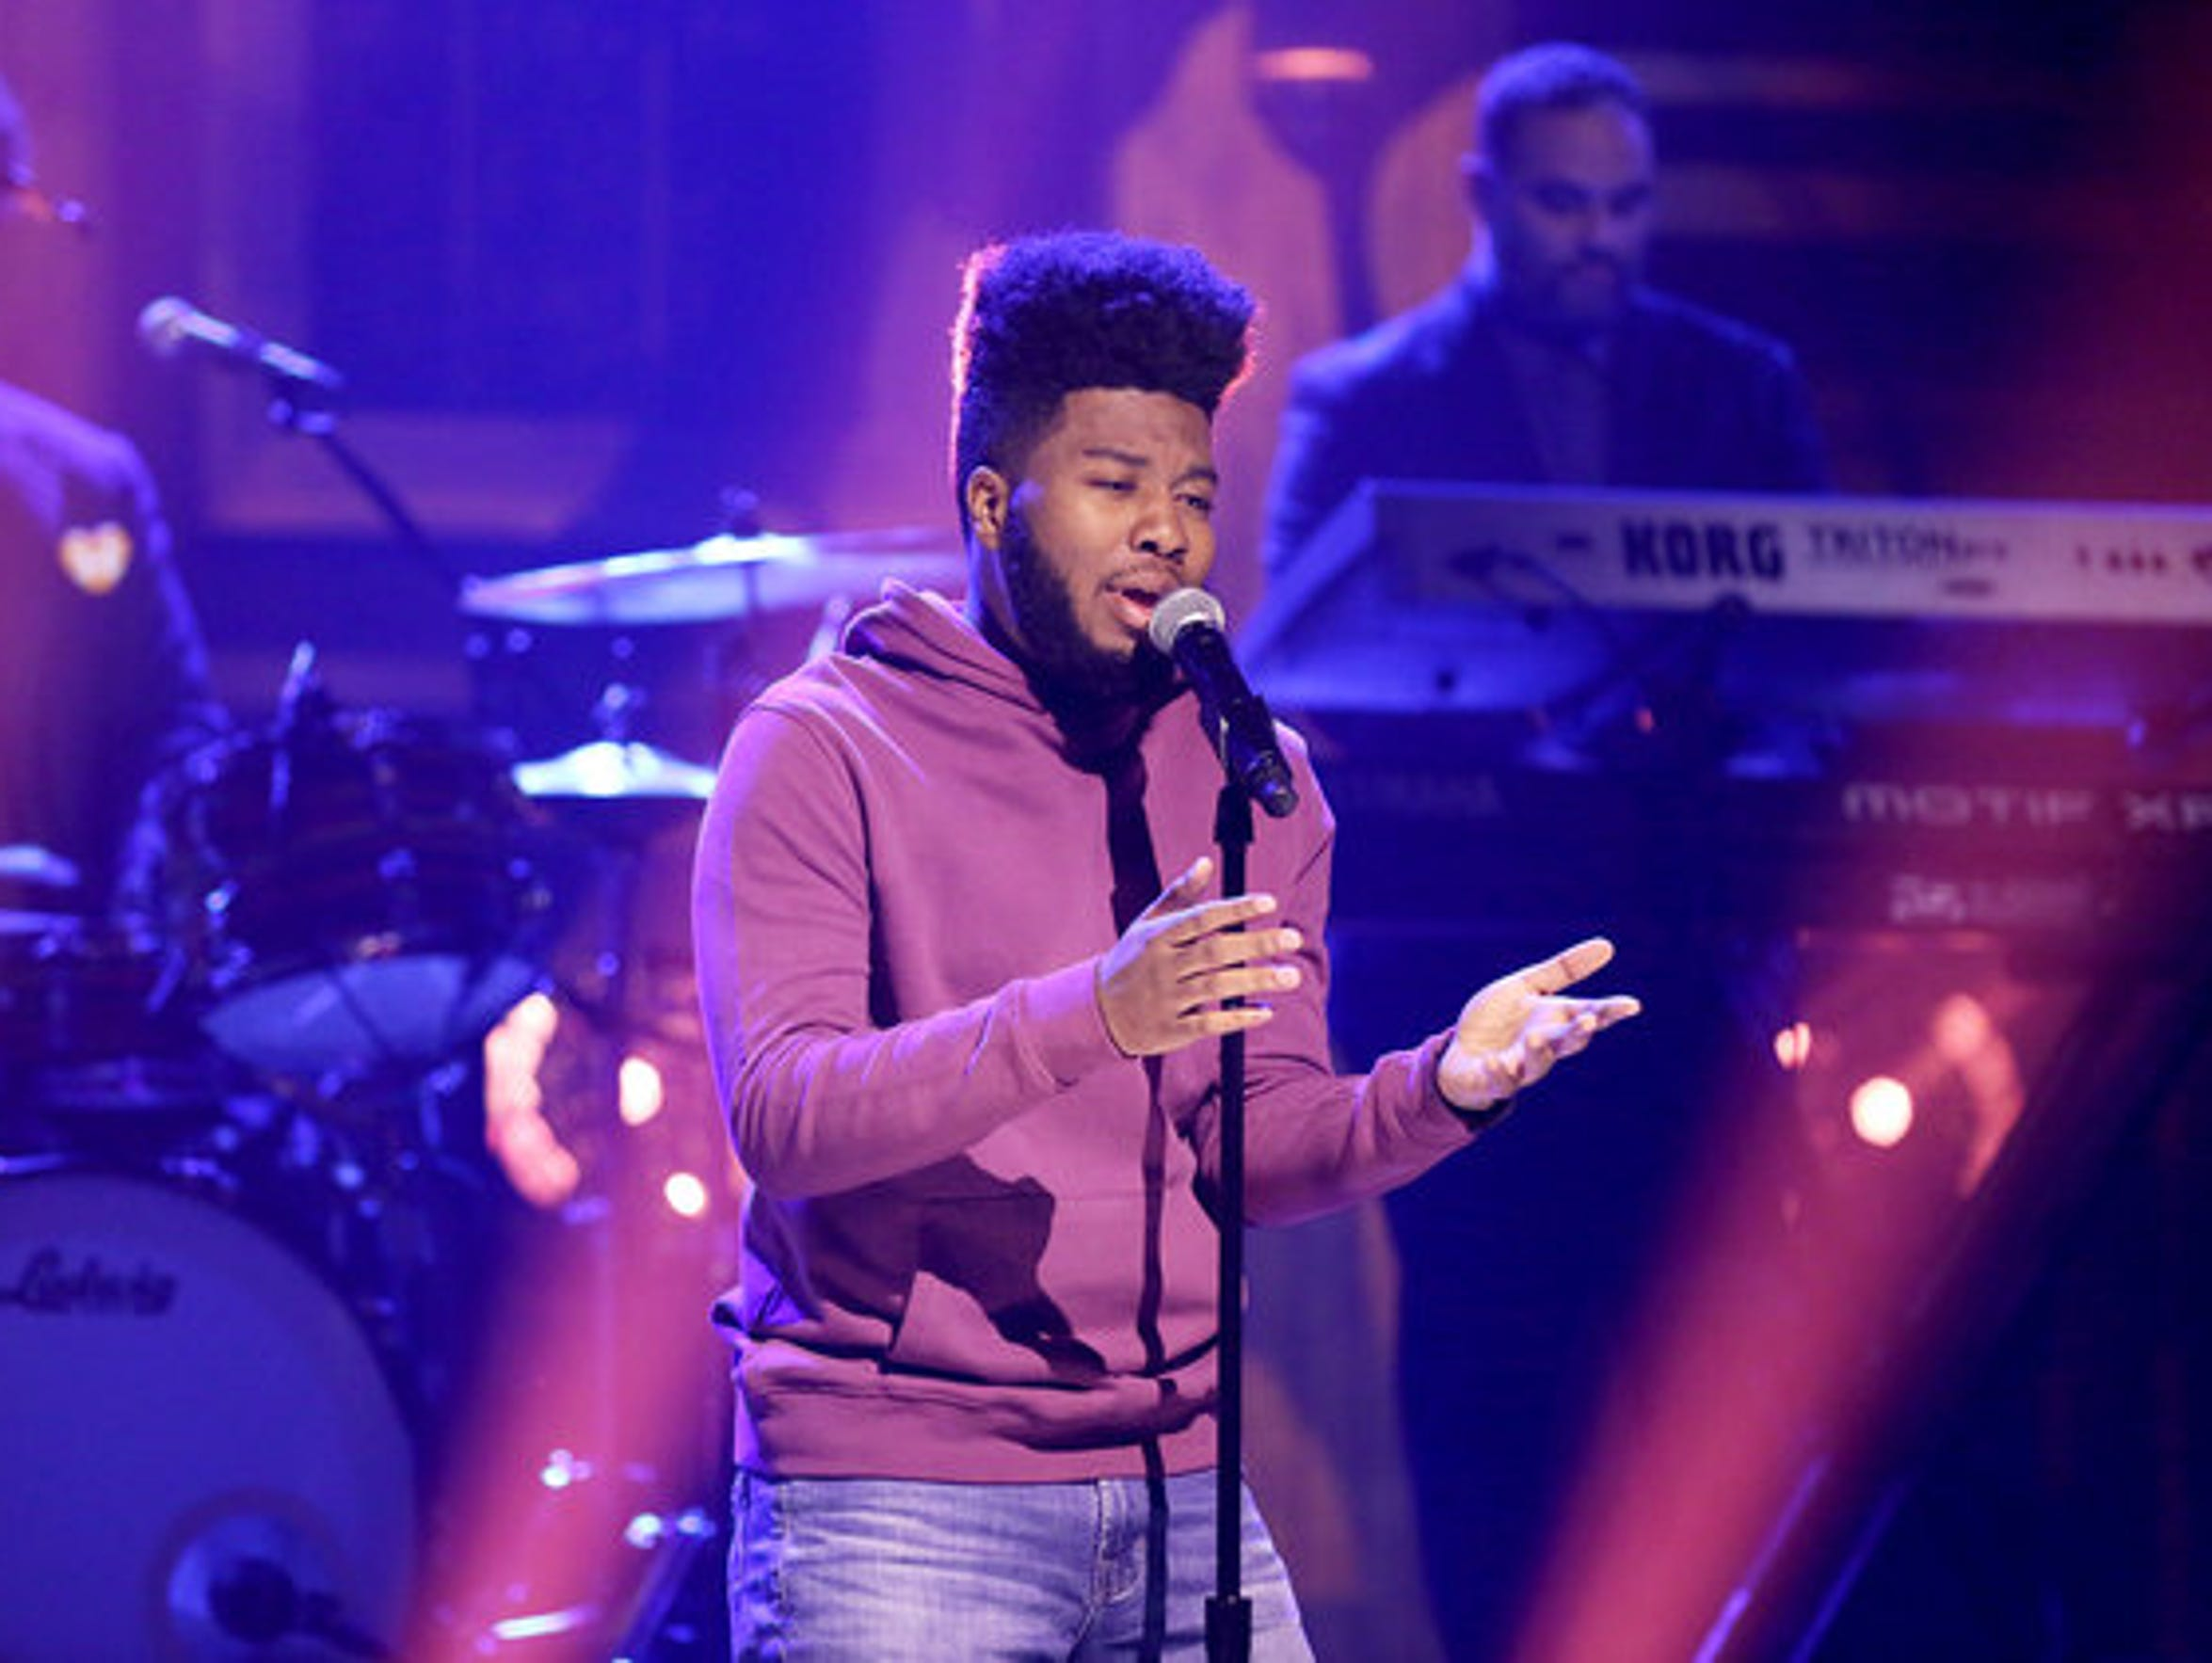 El Paso singer-songwriter Khalid performs his hit song